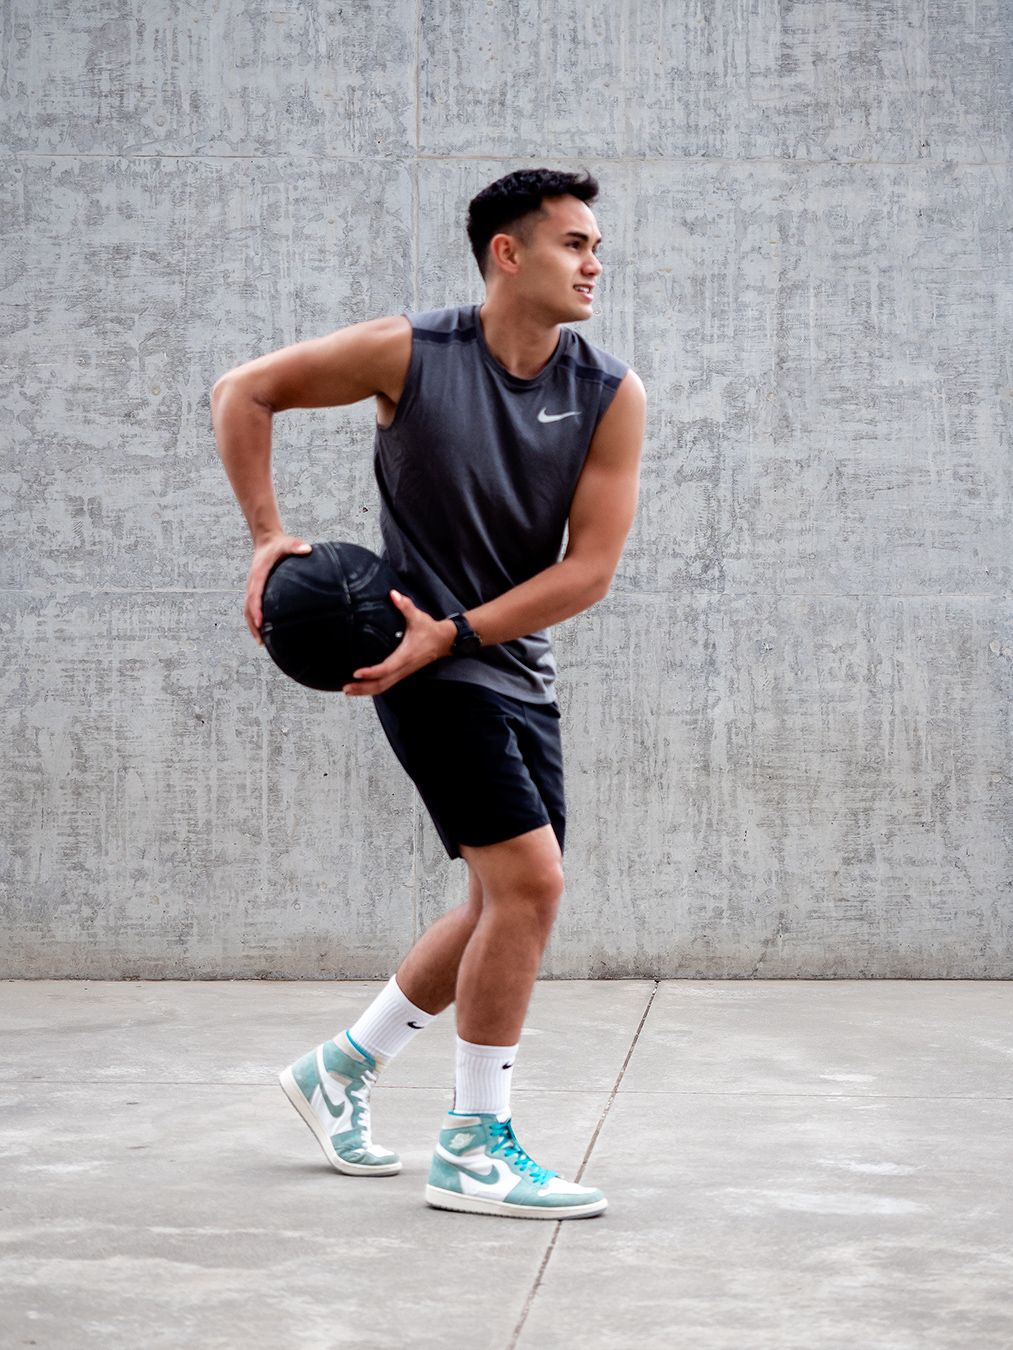 Professional formula one driver Luis performing basketball tricks